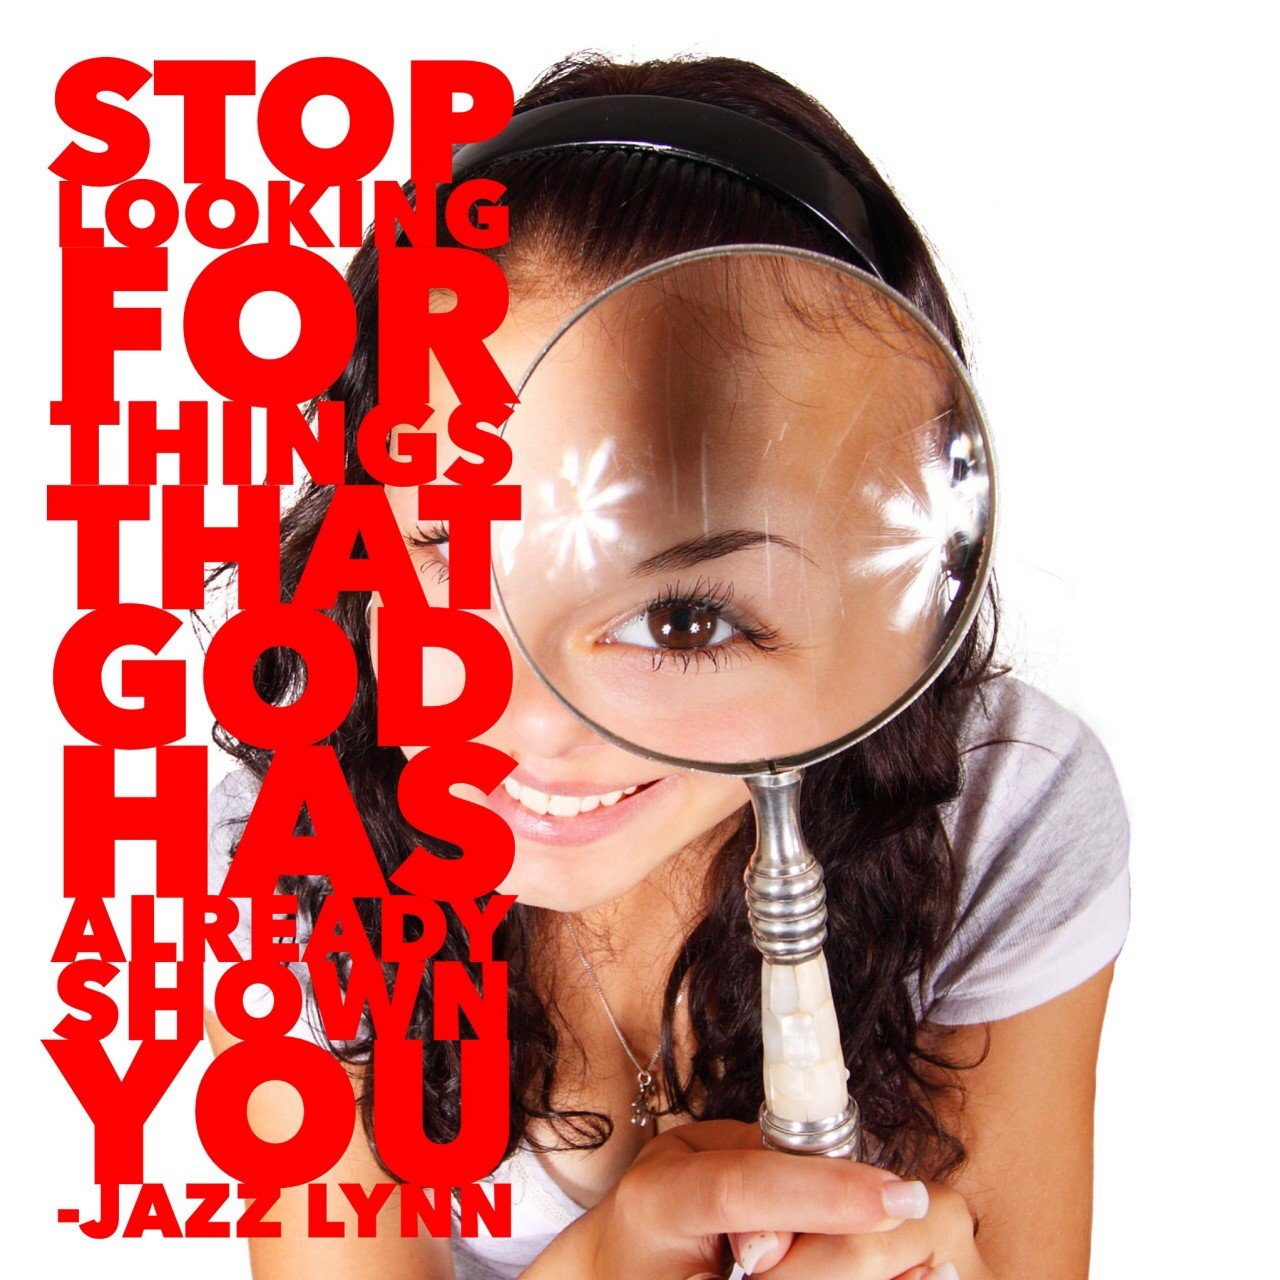 Stop Looking For Things That God Has Already Shown You